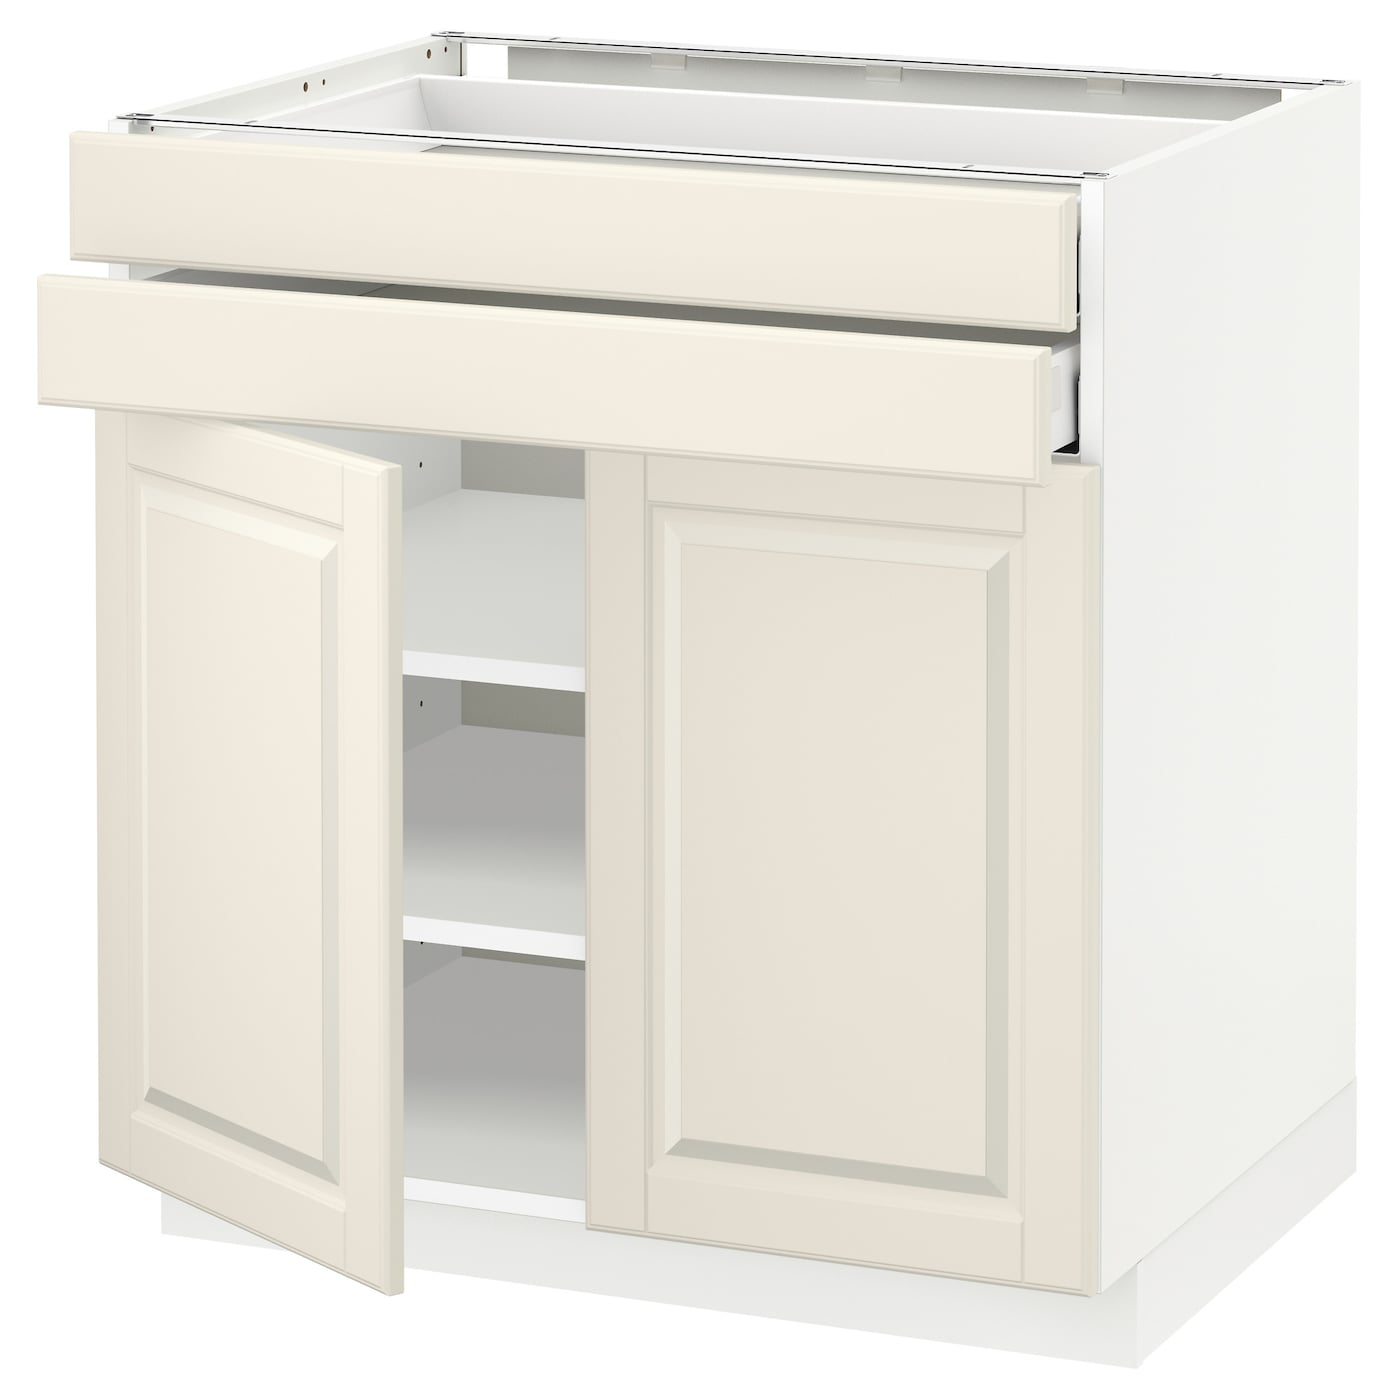 base drawer kitchen cabinets metod maximera base cabinet w 2 doors 2 drawers white 10948